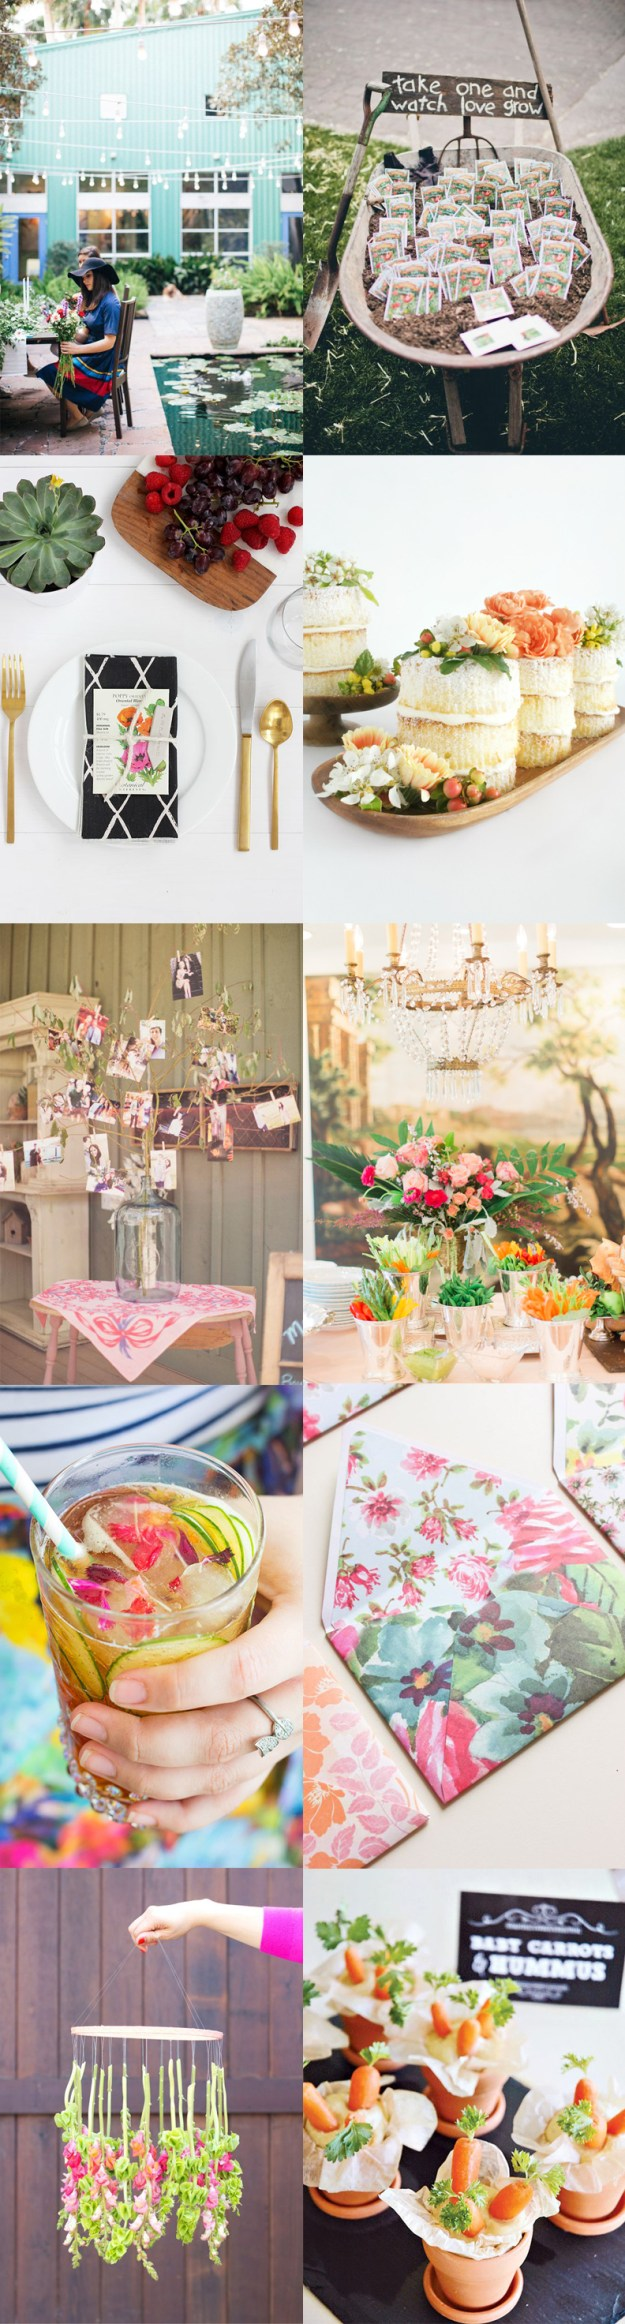 A Garden Party Bridal Shower Inspiration Board